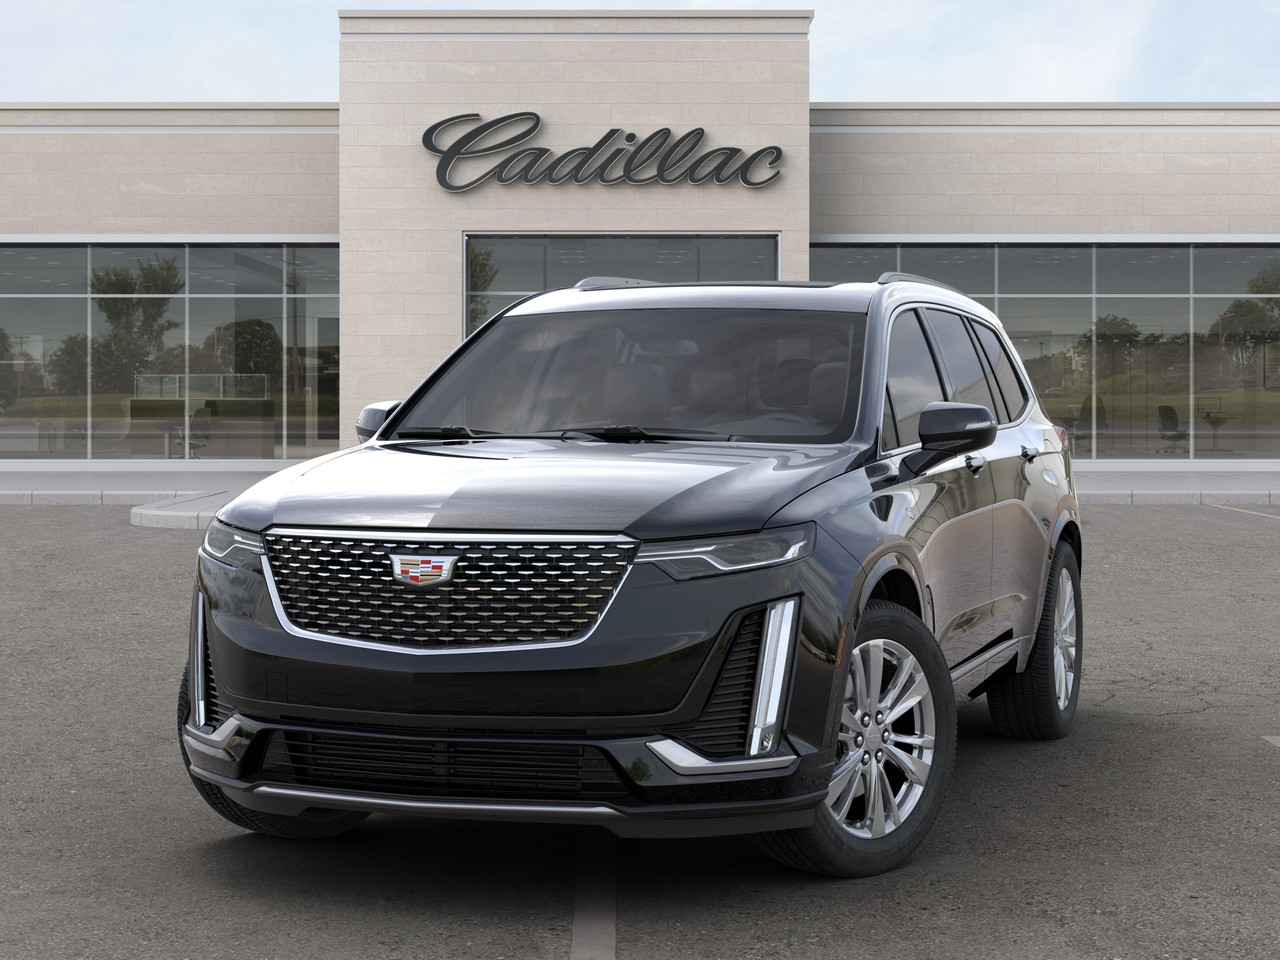 New 2020 Cadillac XT6 Premium Luxury FRONT WHEEL DRIVE SUV